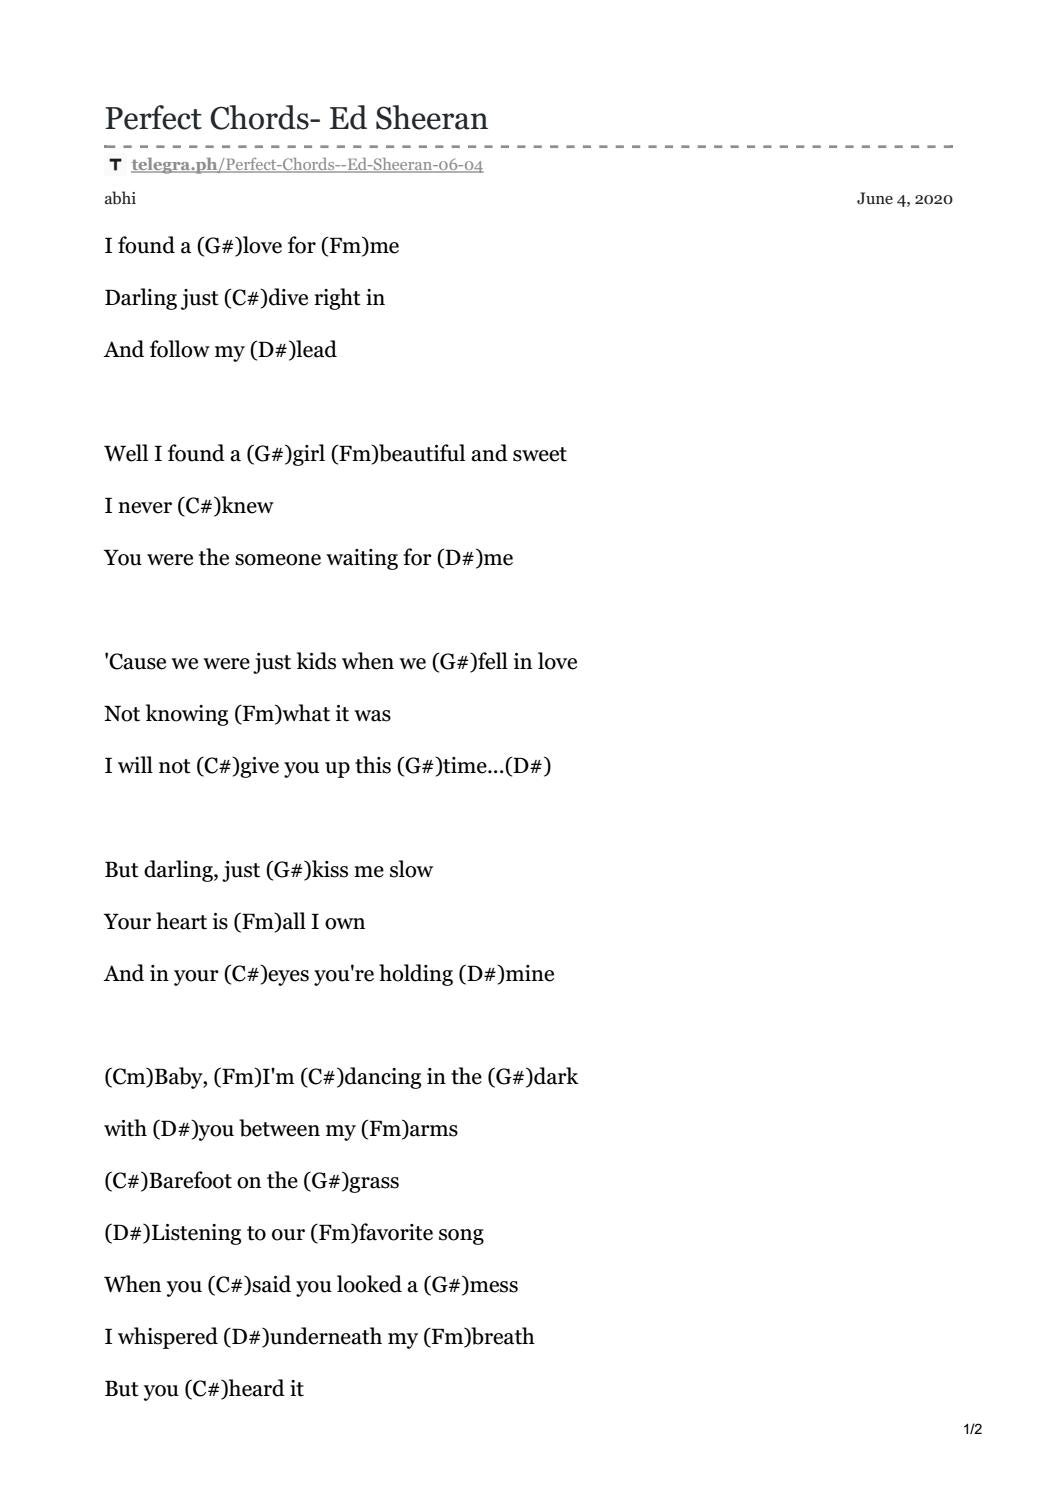 Perfect Chords   Ed sheeran by Perfect Chords   issuu